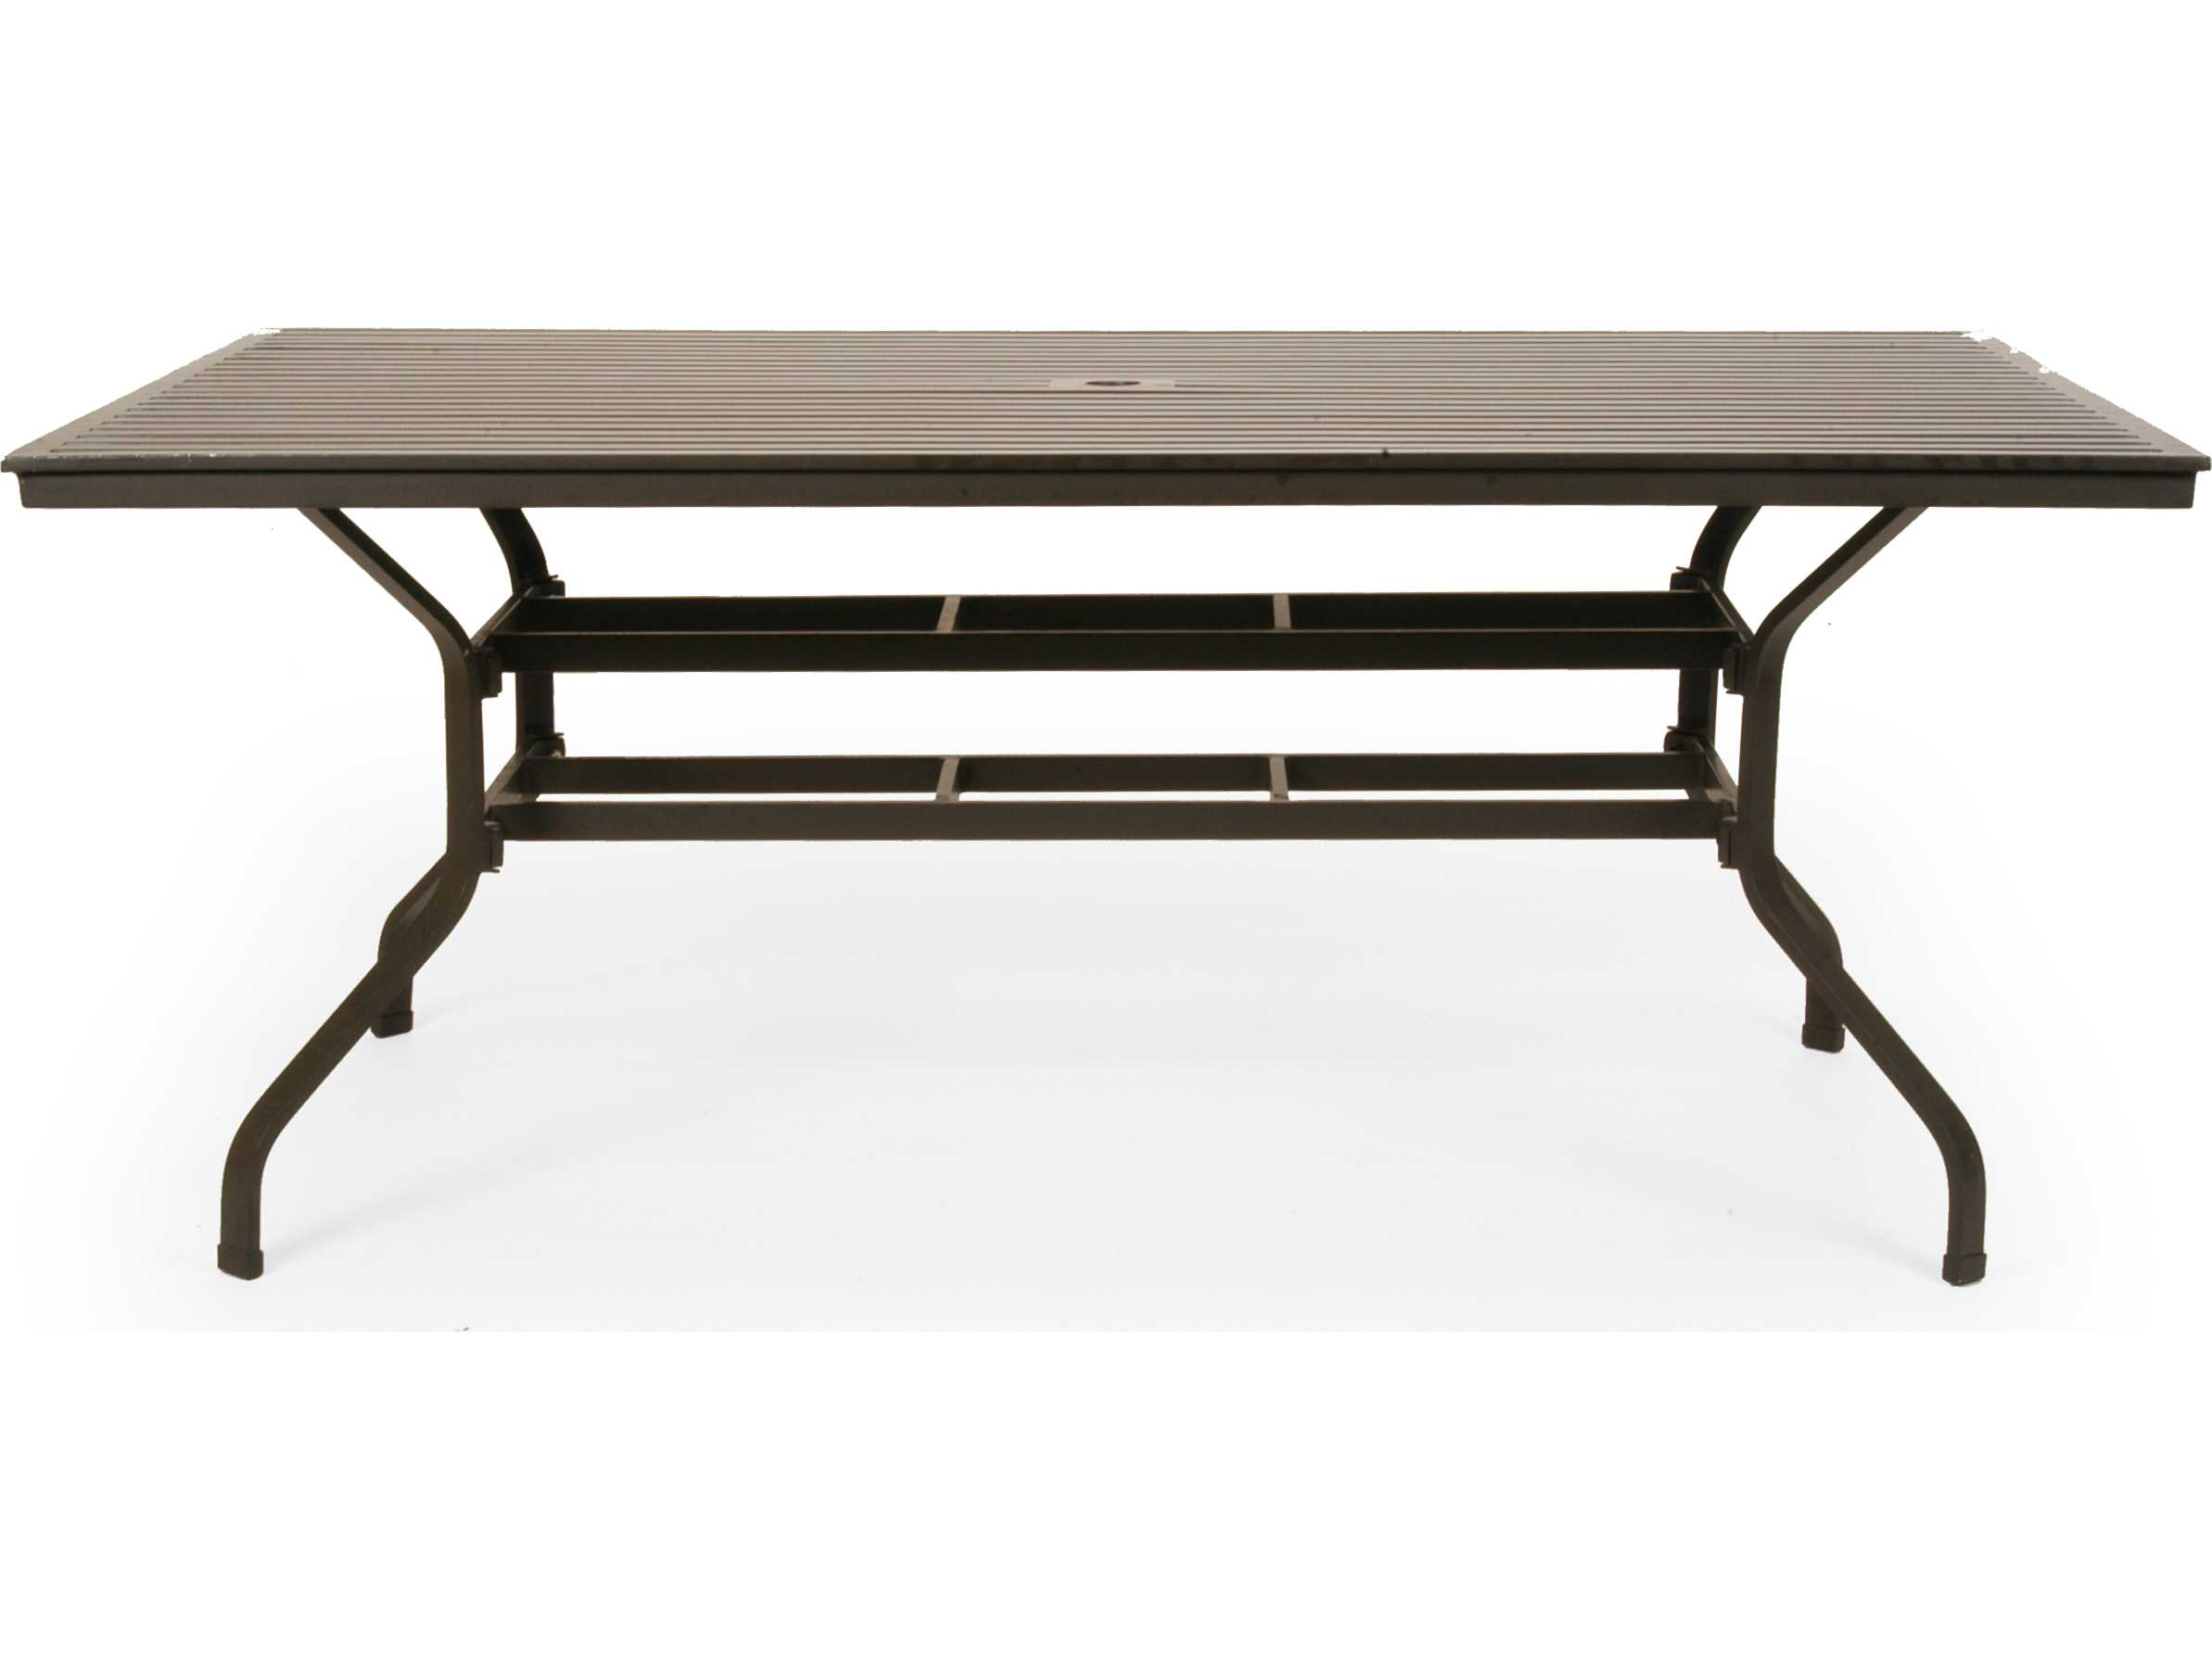 caluco san michele aluminum 96 39 39 w x 42 39 39 d rectangular dining table with umbrella hole 710c 96. Black Bedroom Furniture Sets. Home Design Ideas